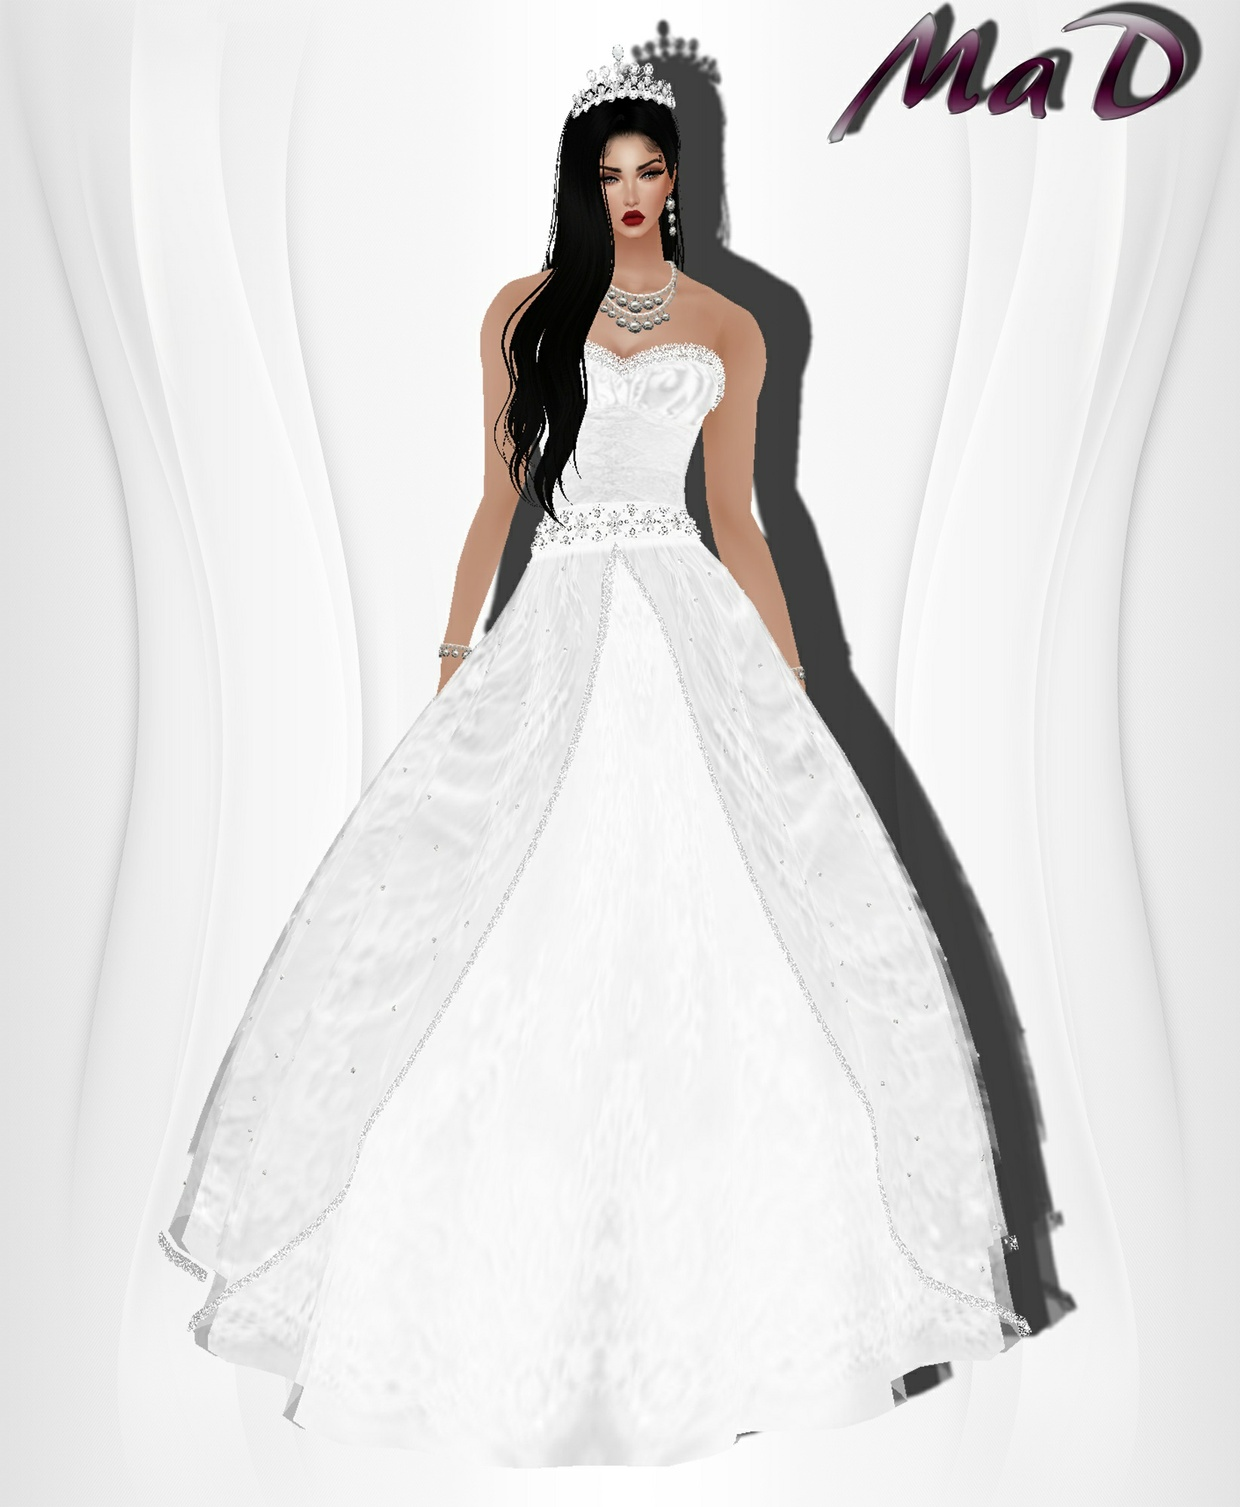 MaD Wedding Queen set ONLY CATTY